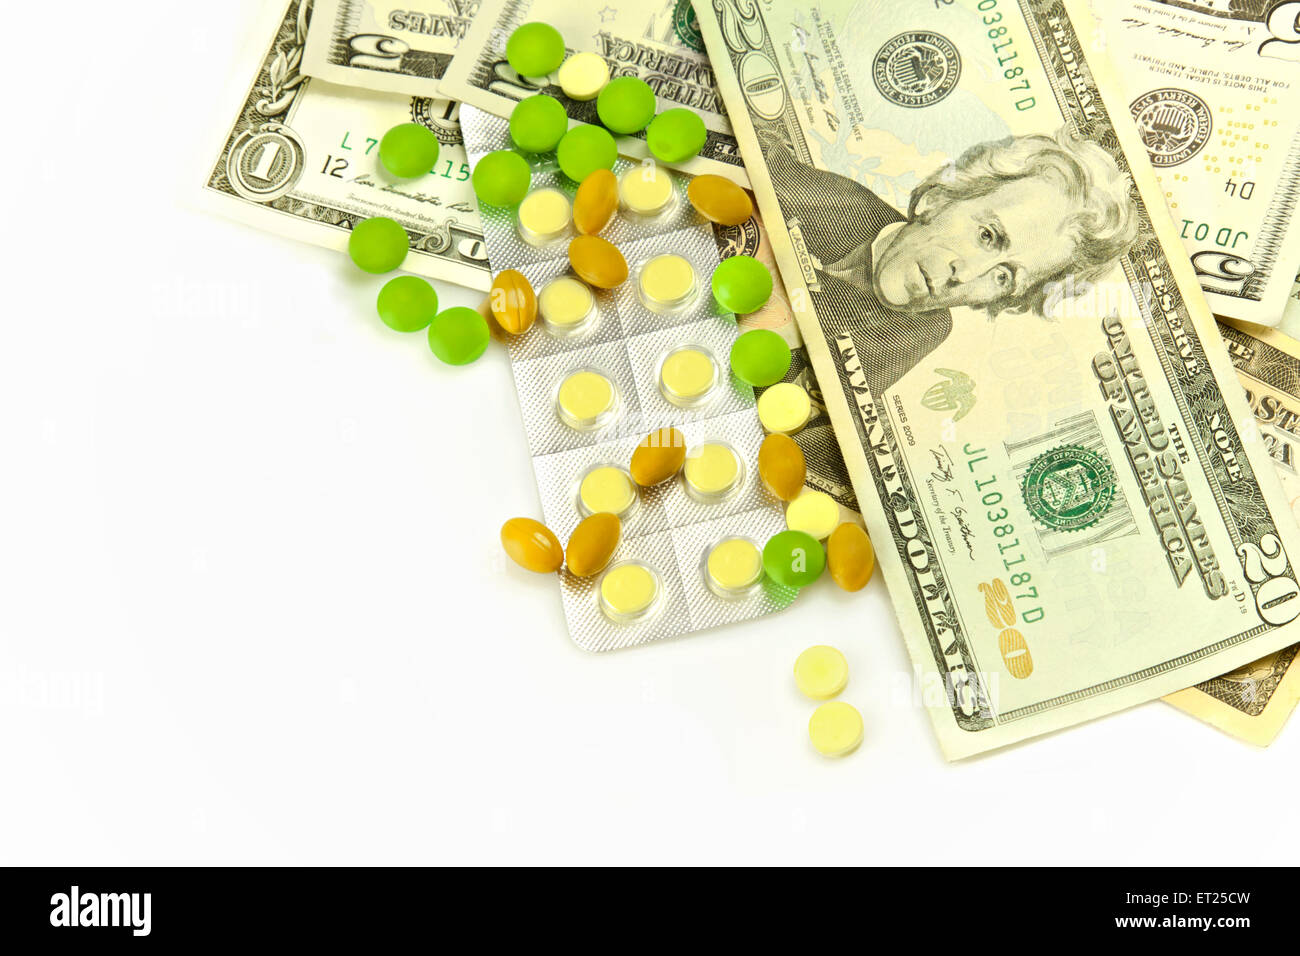 Health care, pills and financially medical expensive - Stock Image